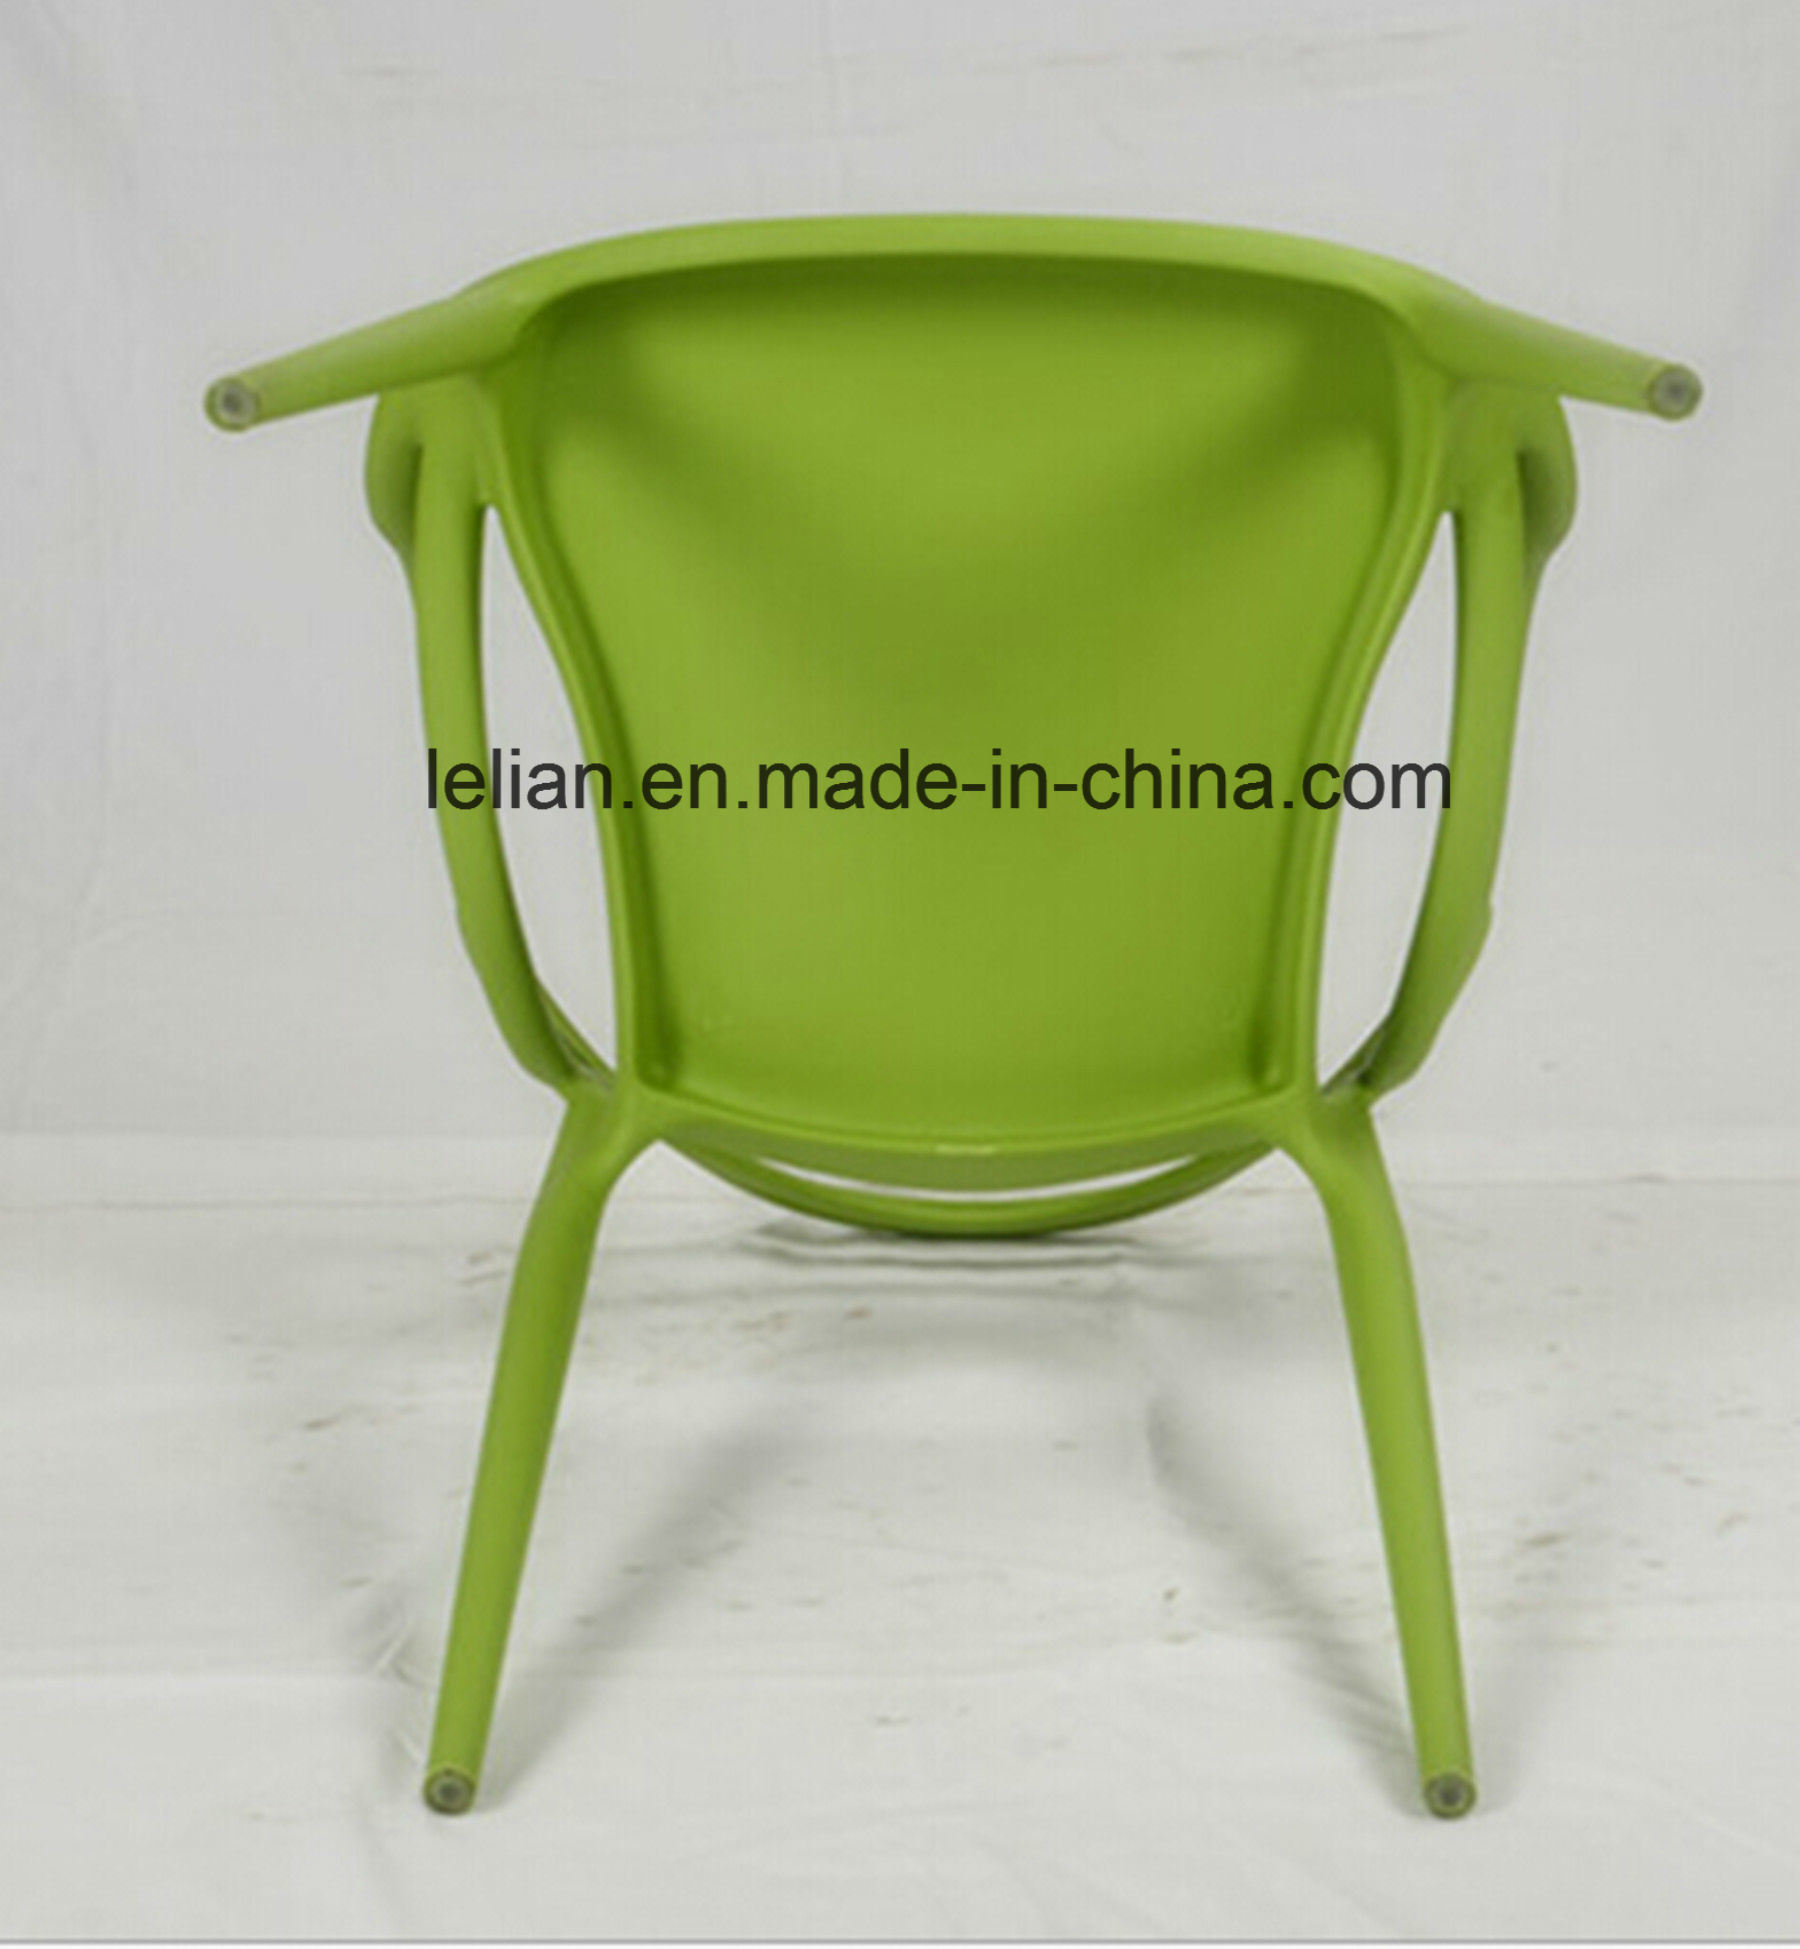 Moulded PP Plastic Stacking Dining Chair, Outdoor Garden Chair (LL-0052)